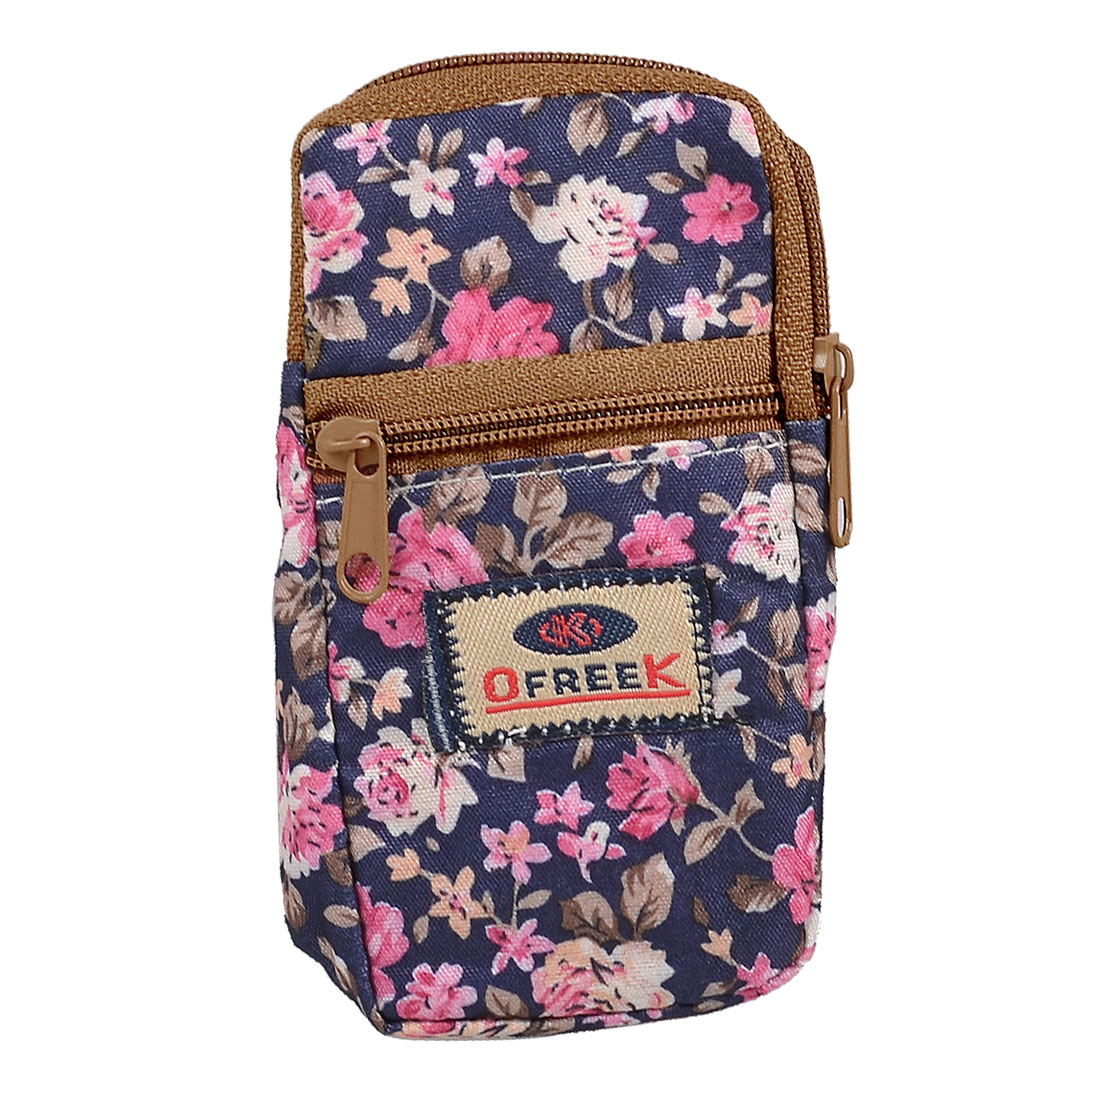 Flower Print Zipper Closure 2-pocket Purple Mobile Phone Wrist Bag Pouch